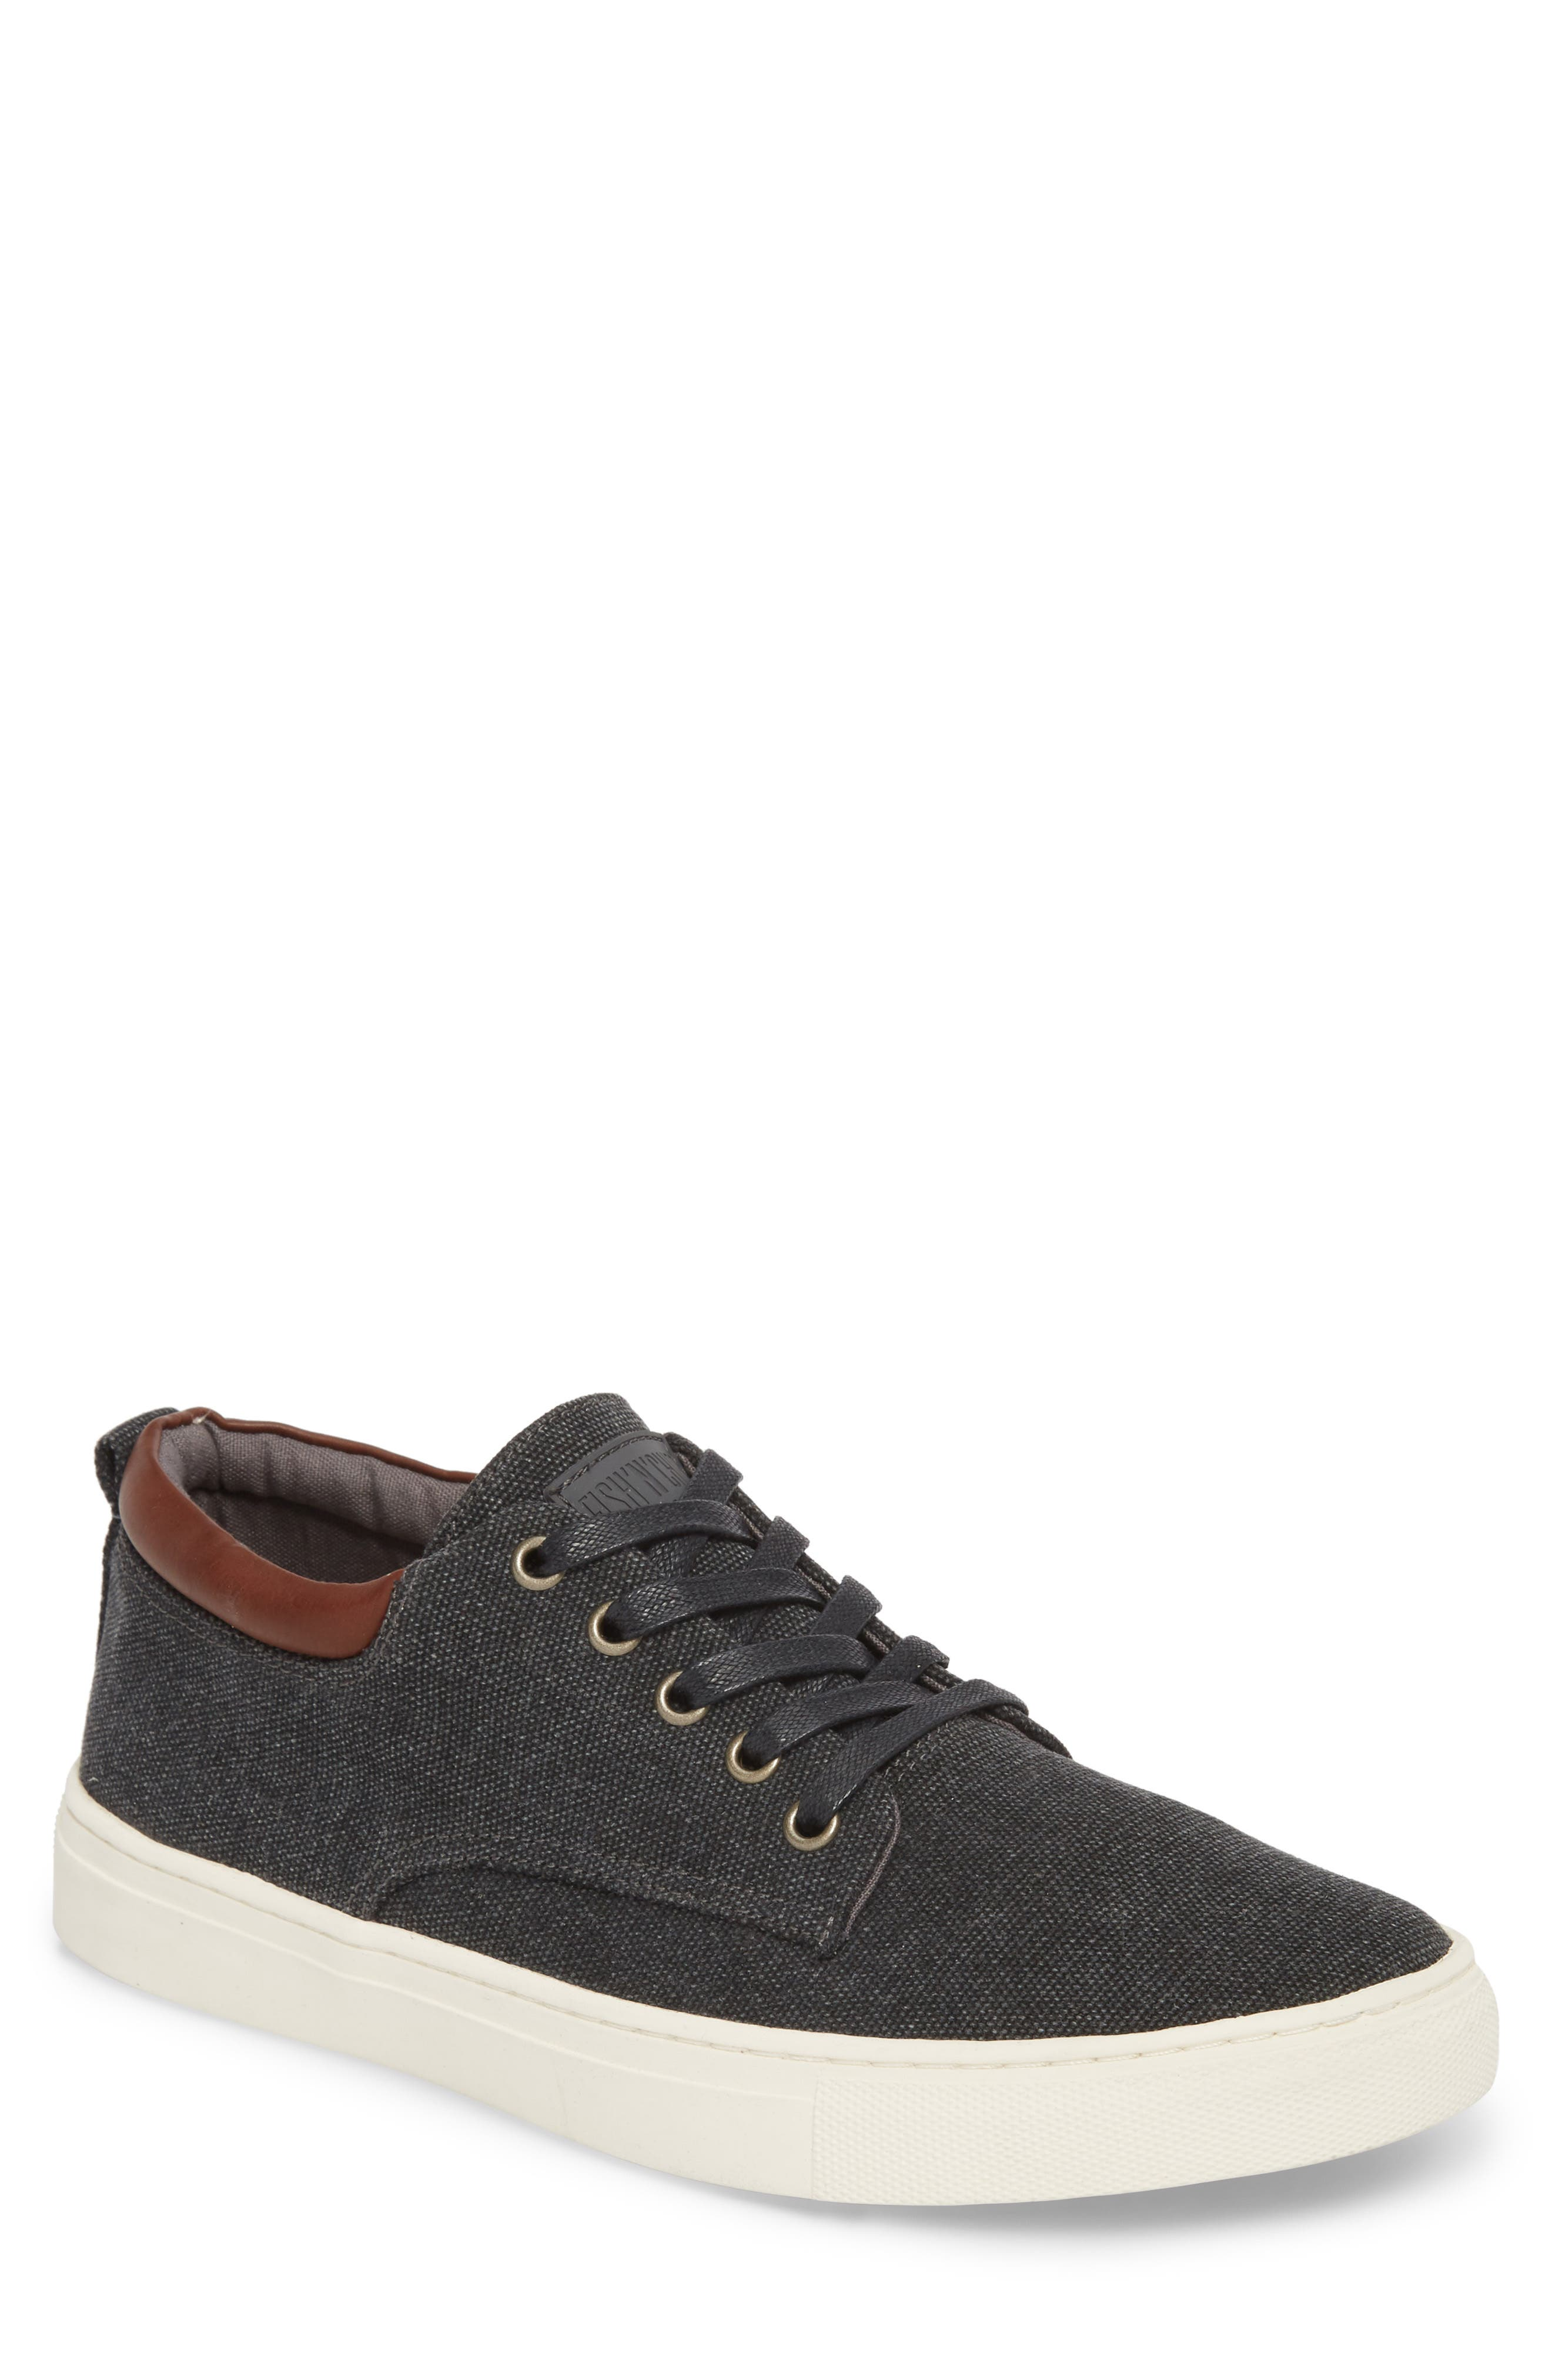 Fish 'N' Chips Hampton Low Top Sneaker,                         Main,                         color, CHARCOAL FABRIC